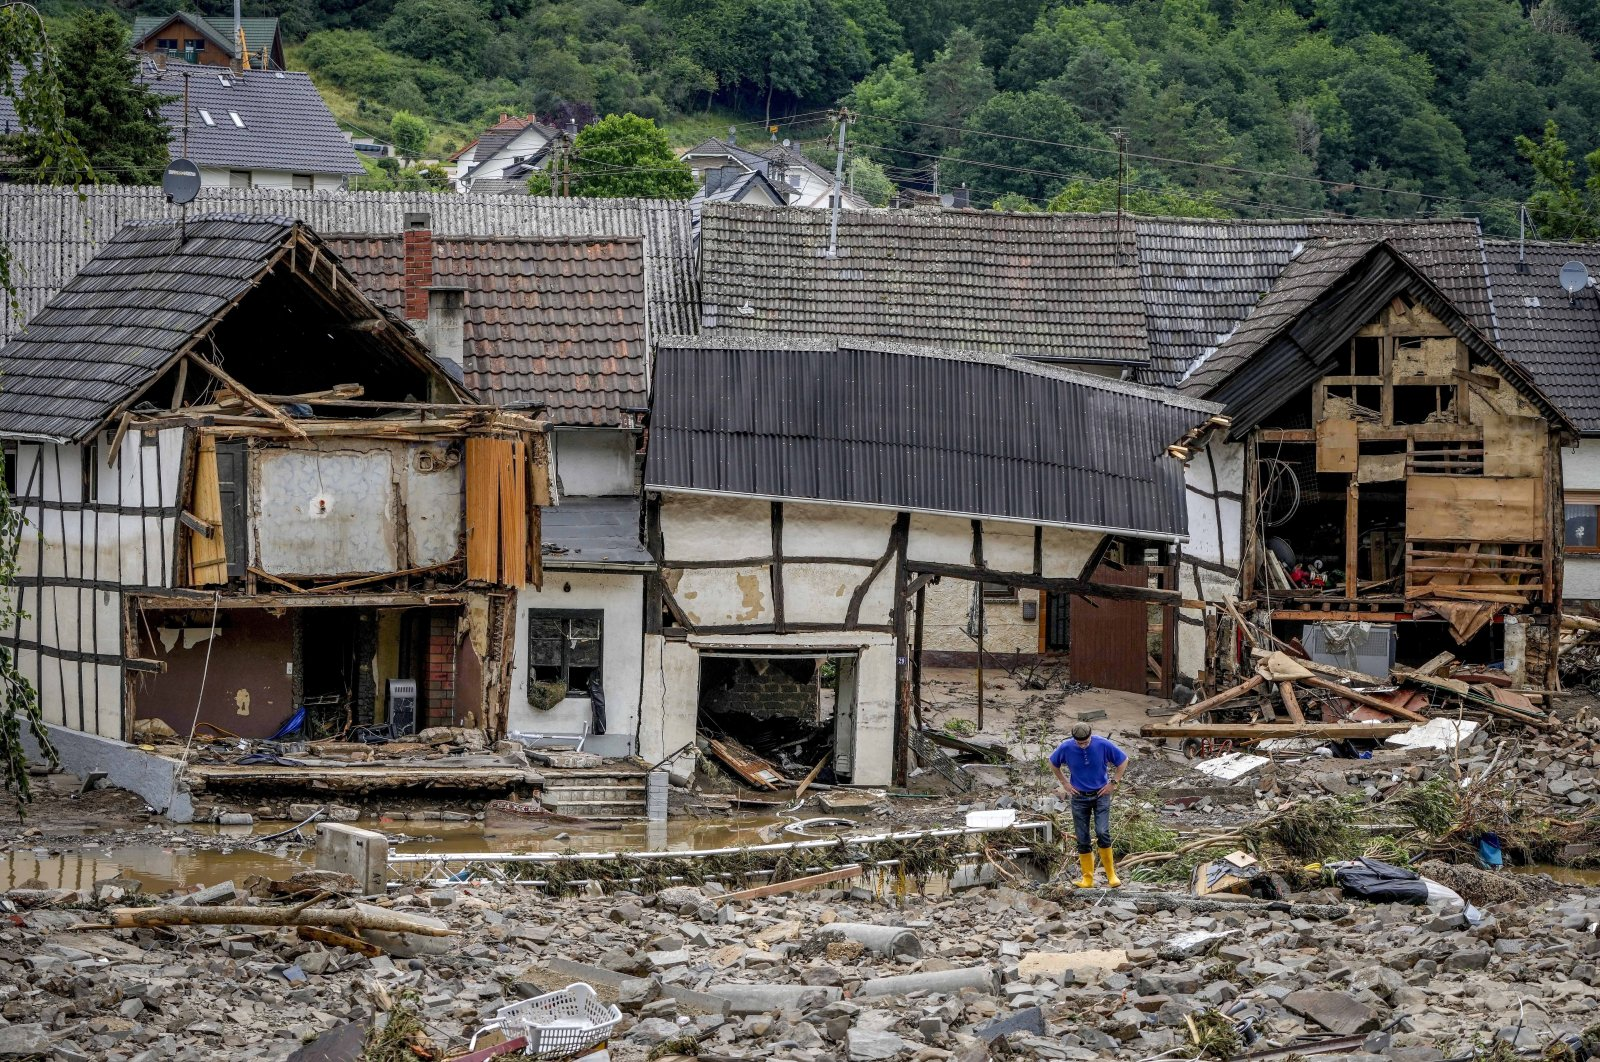 Houses destroyed by flooding seen in Schuld, Germany, July 15, 2021. (AP Photo)